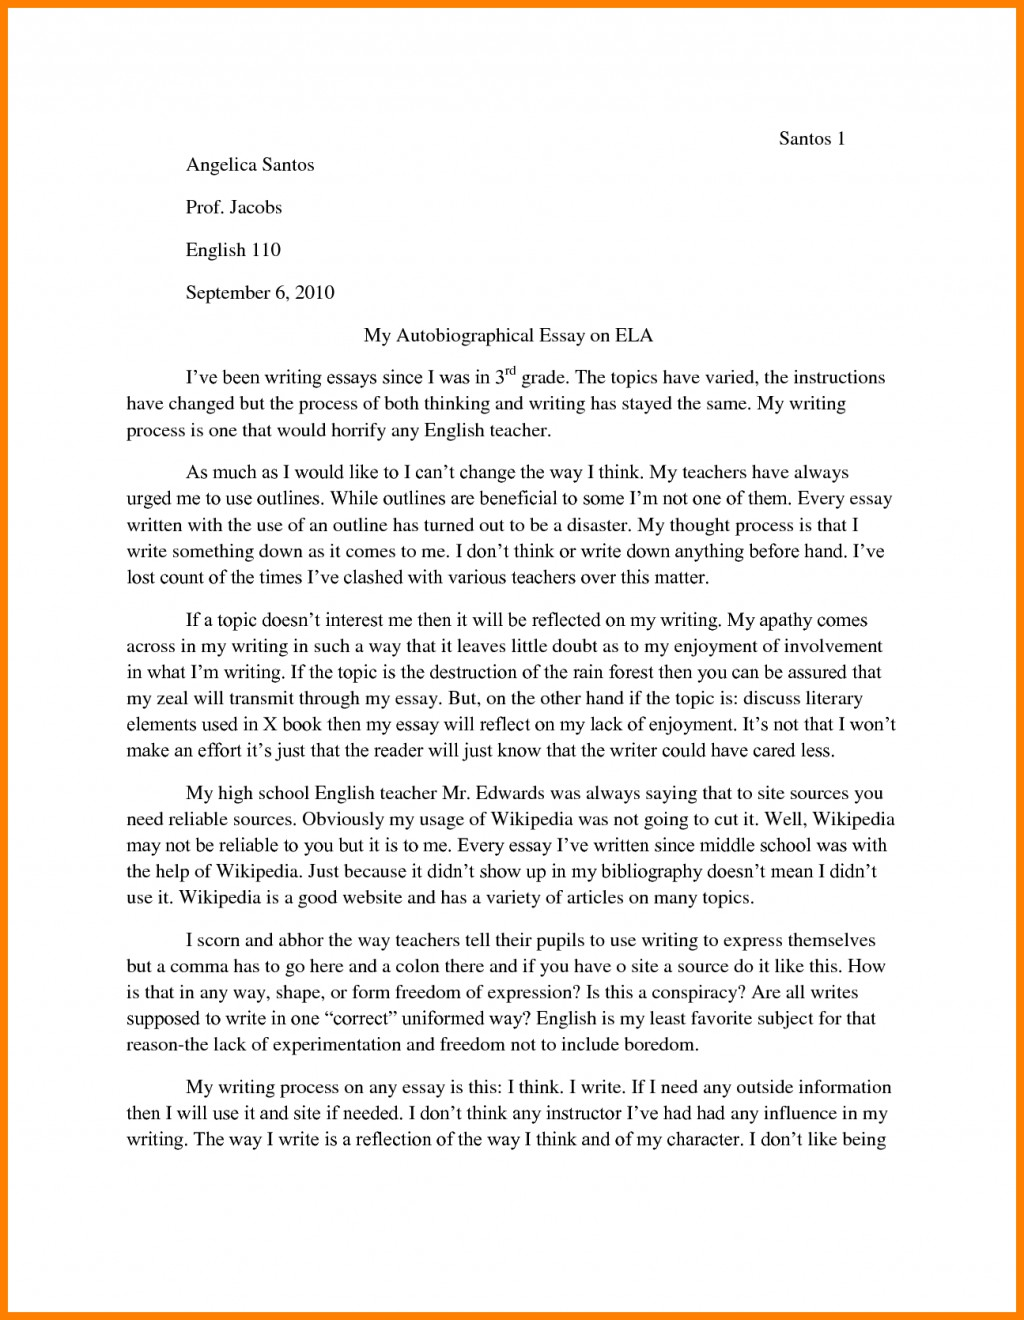 003 Essay Example How To Write An Autobiographical Autobiography College Outline 84096 Incredible For Graduate School A Job Large